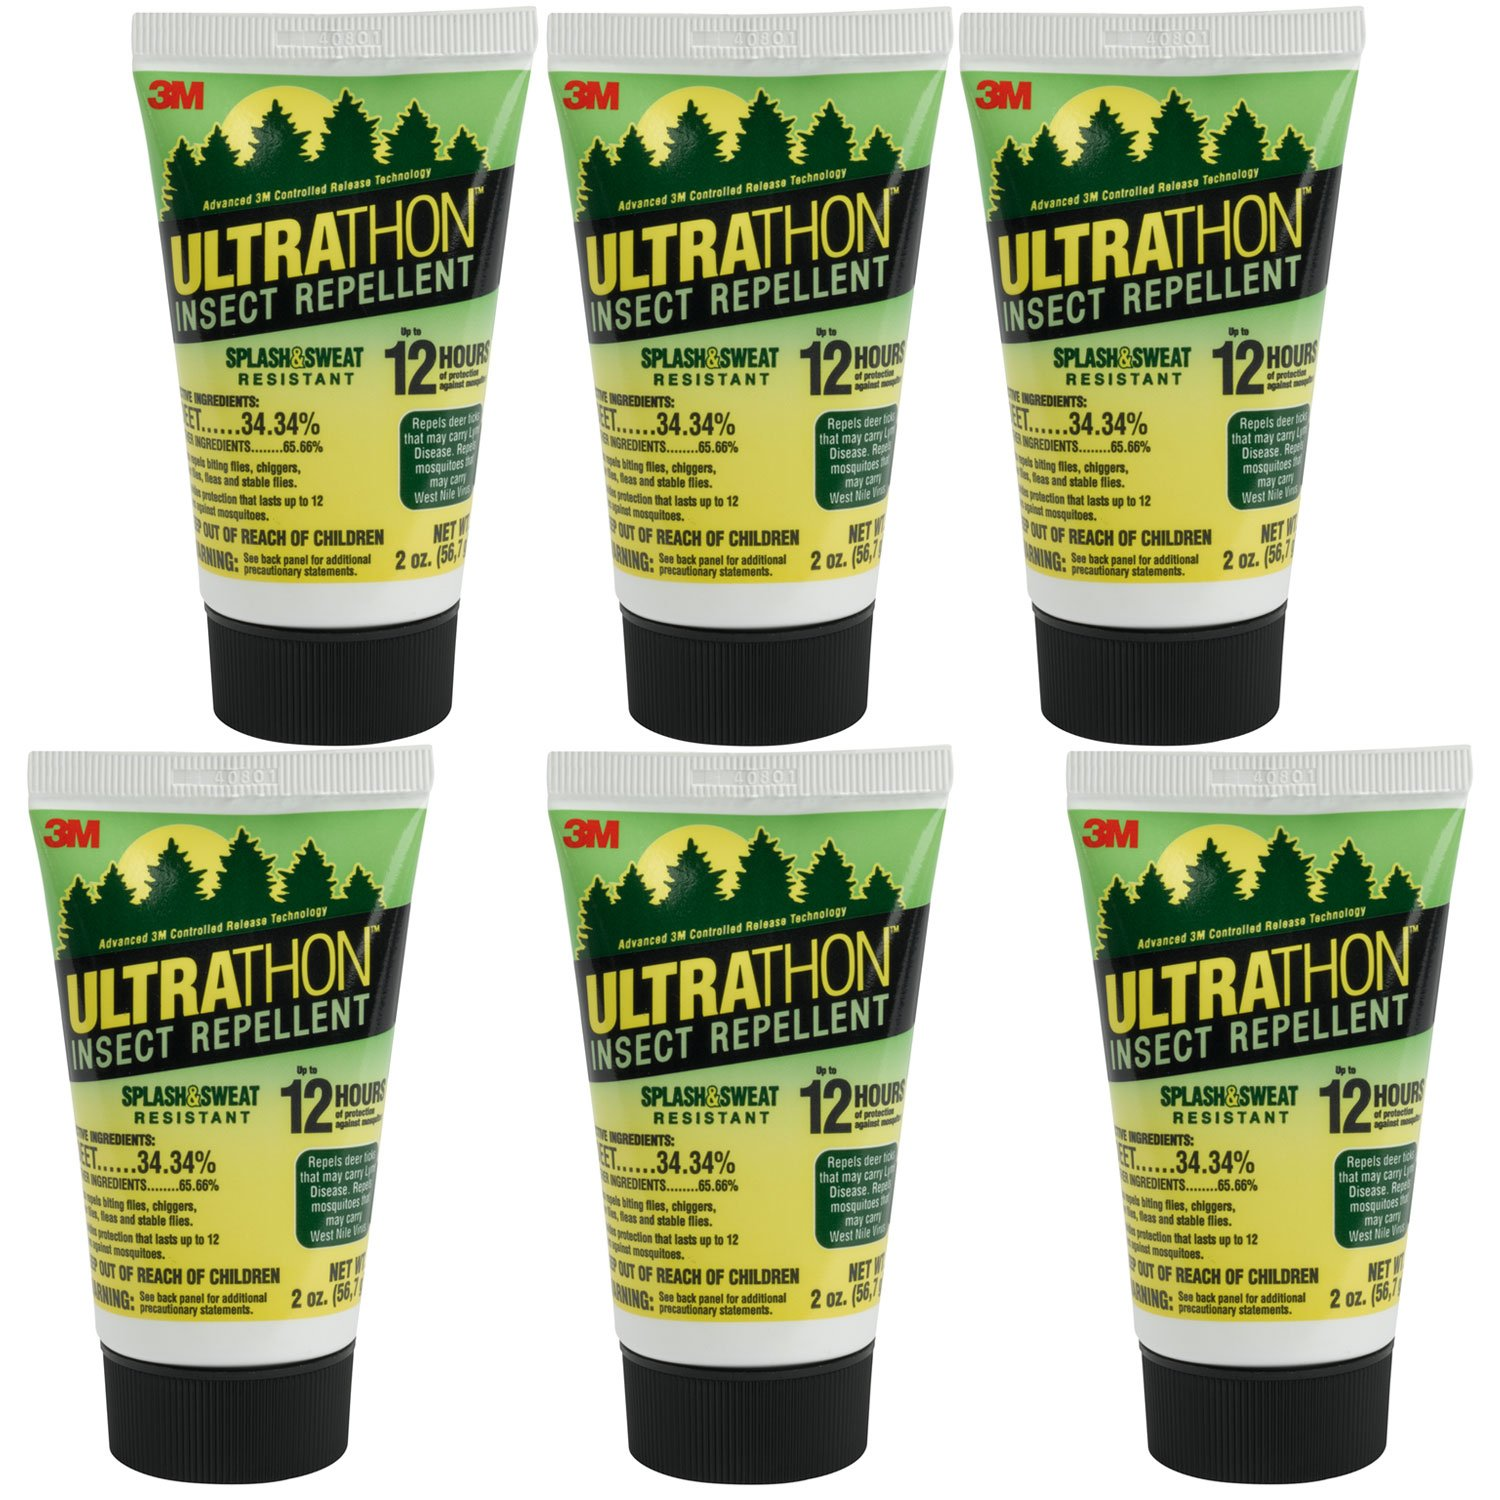 3M Ultrathon Insect Repellent Lotion, 2-Ounce (6-Tubes)